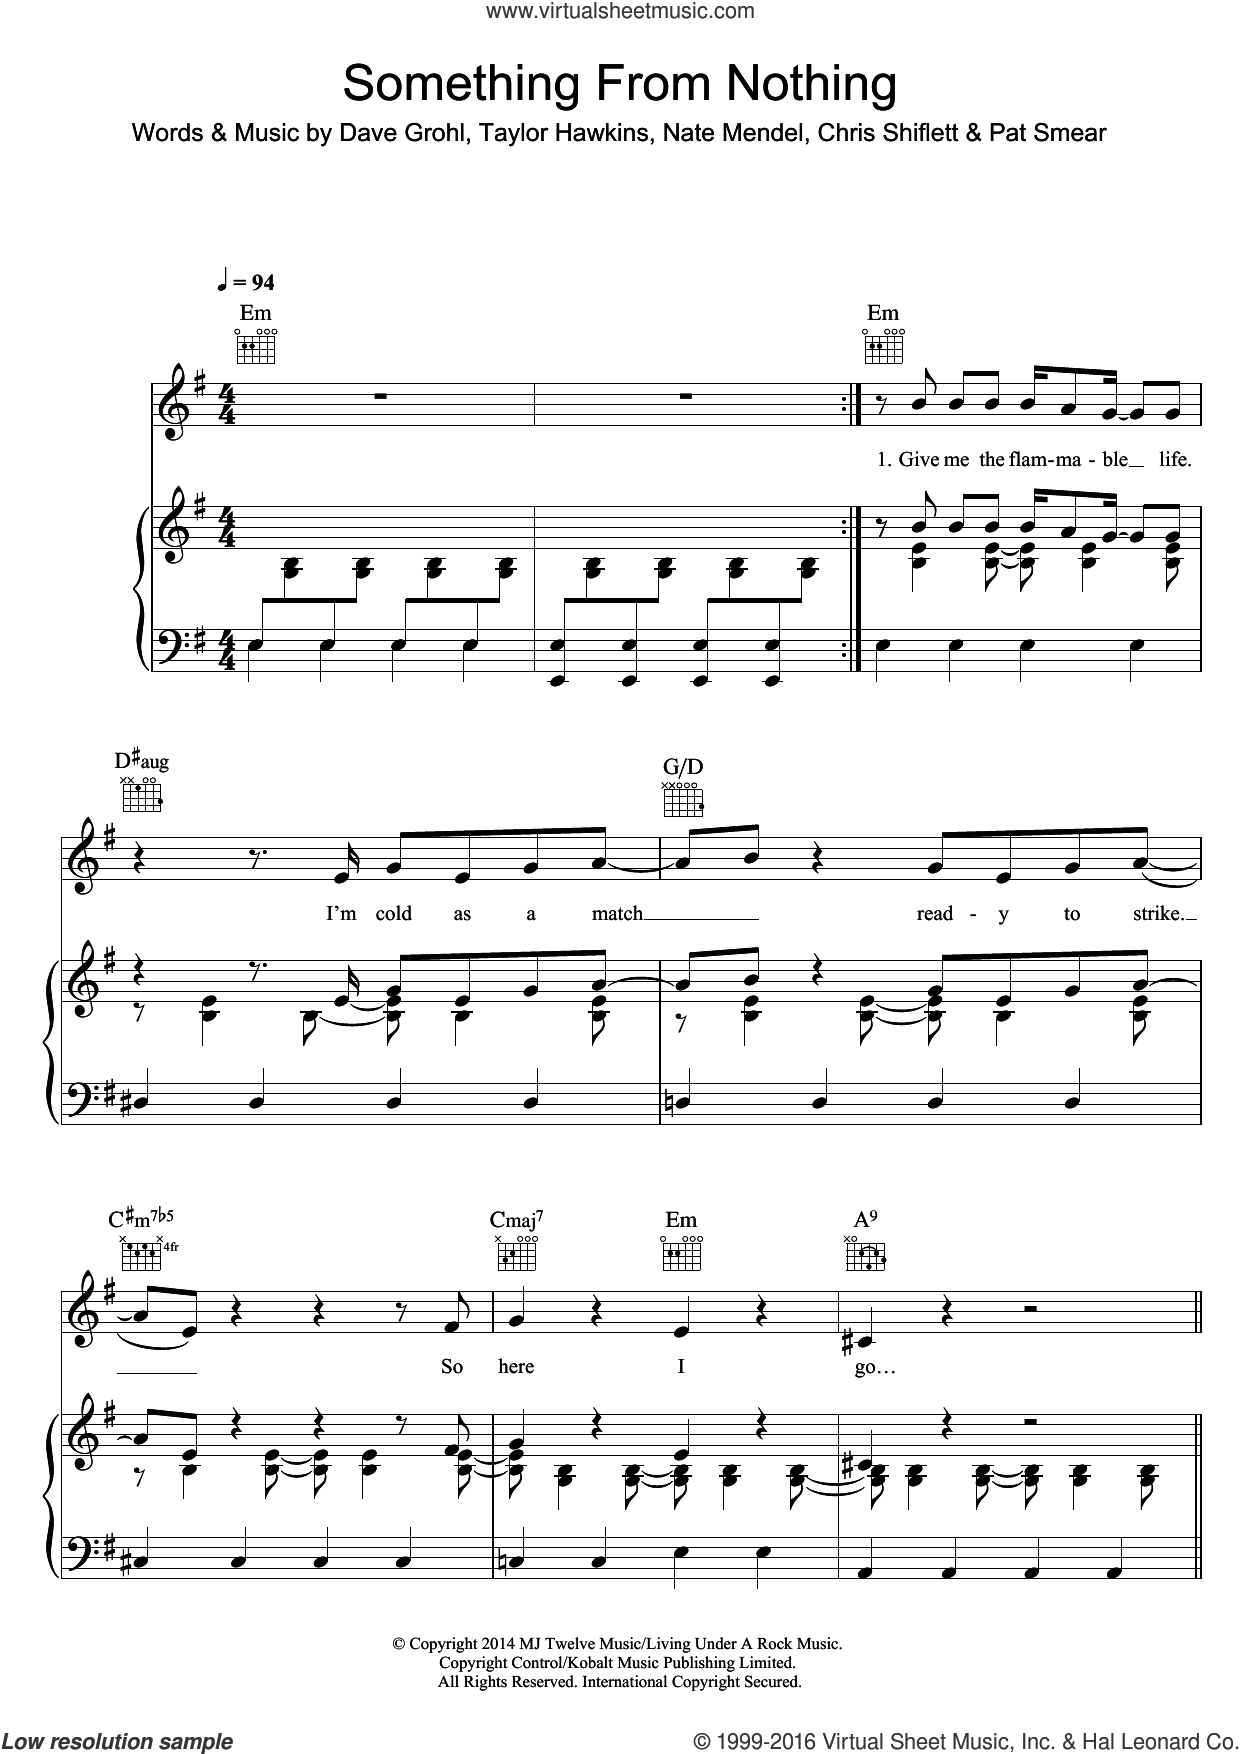 Something From Nothing sheet music for voice, piano or guitar by Foo Fighters, Chris Shiflett, Dave Grohl, Nate Mendel, Pat Smear and Taylor Hawkins, intermediate skill level